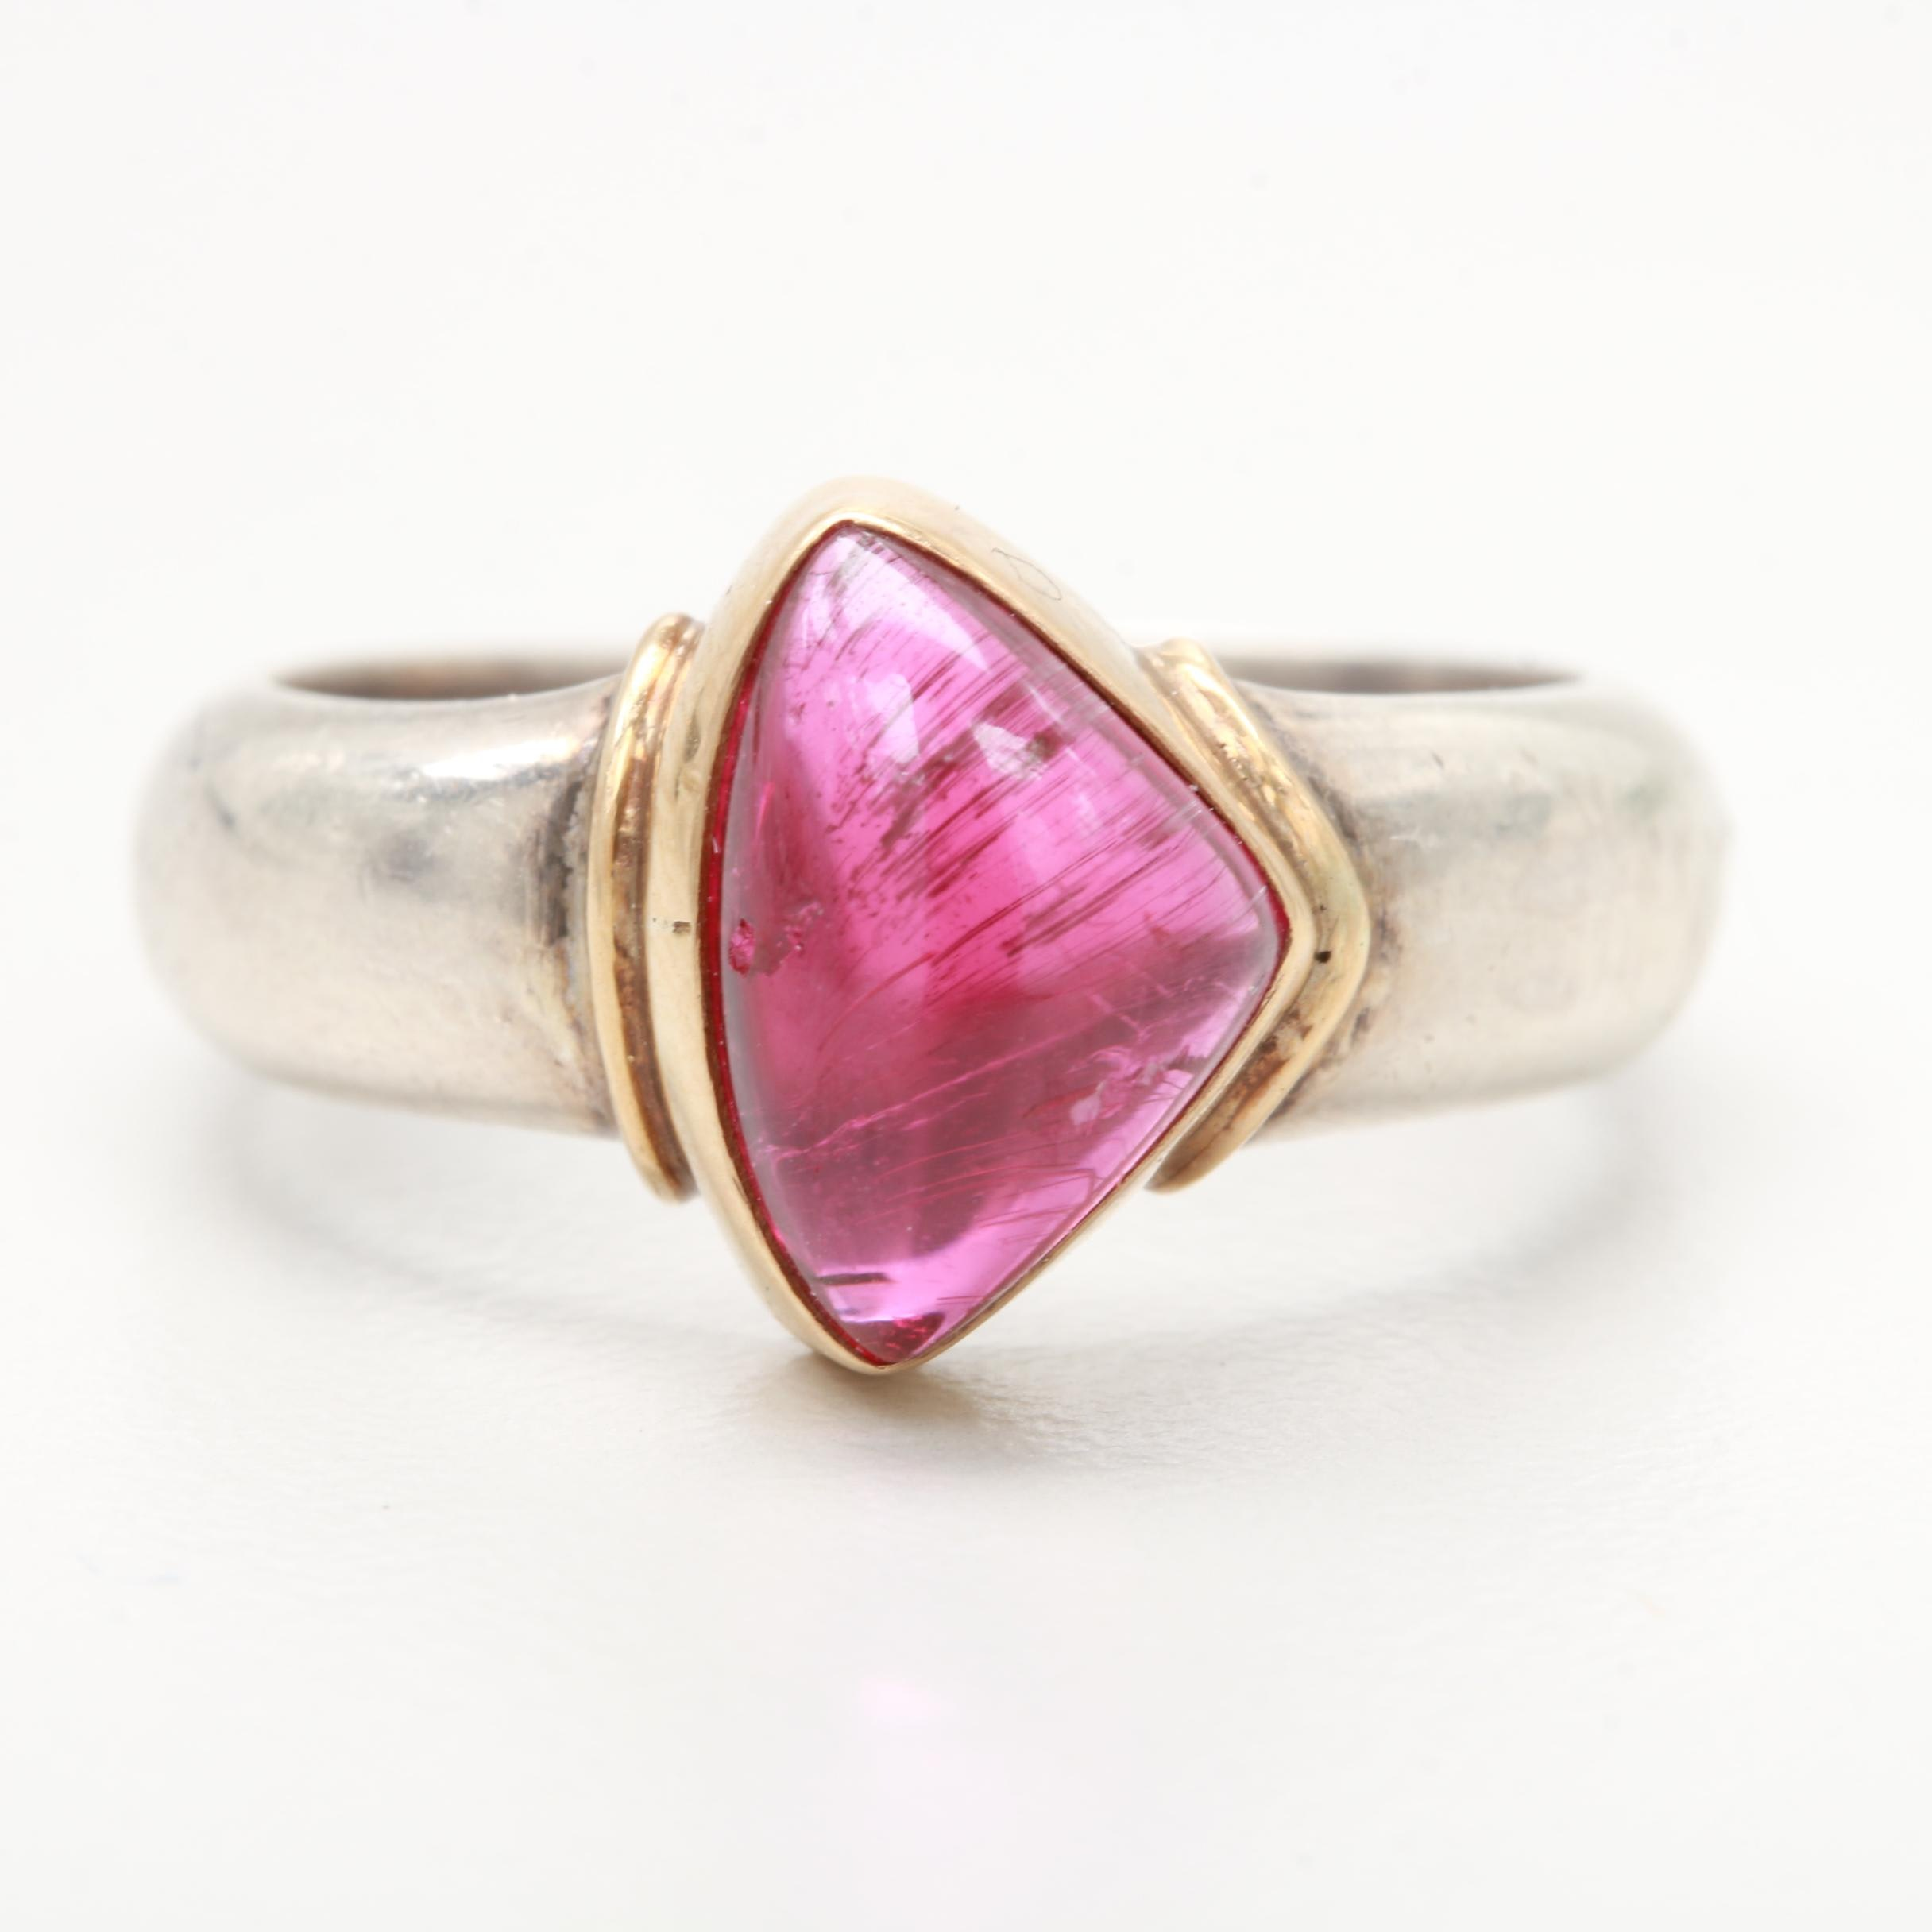 Sterling Silver Tourmaline Ring with 22K Yellow Gold Accents